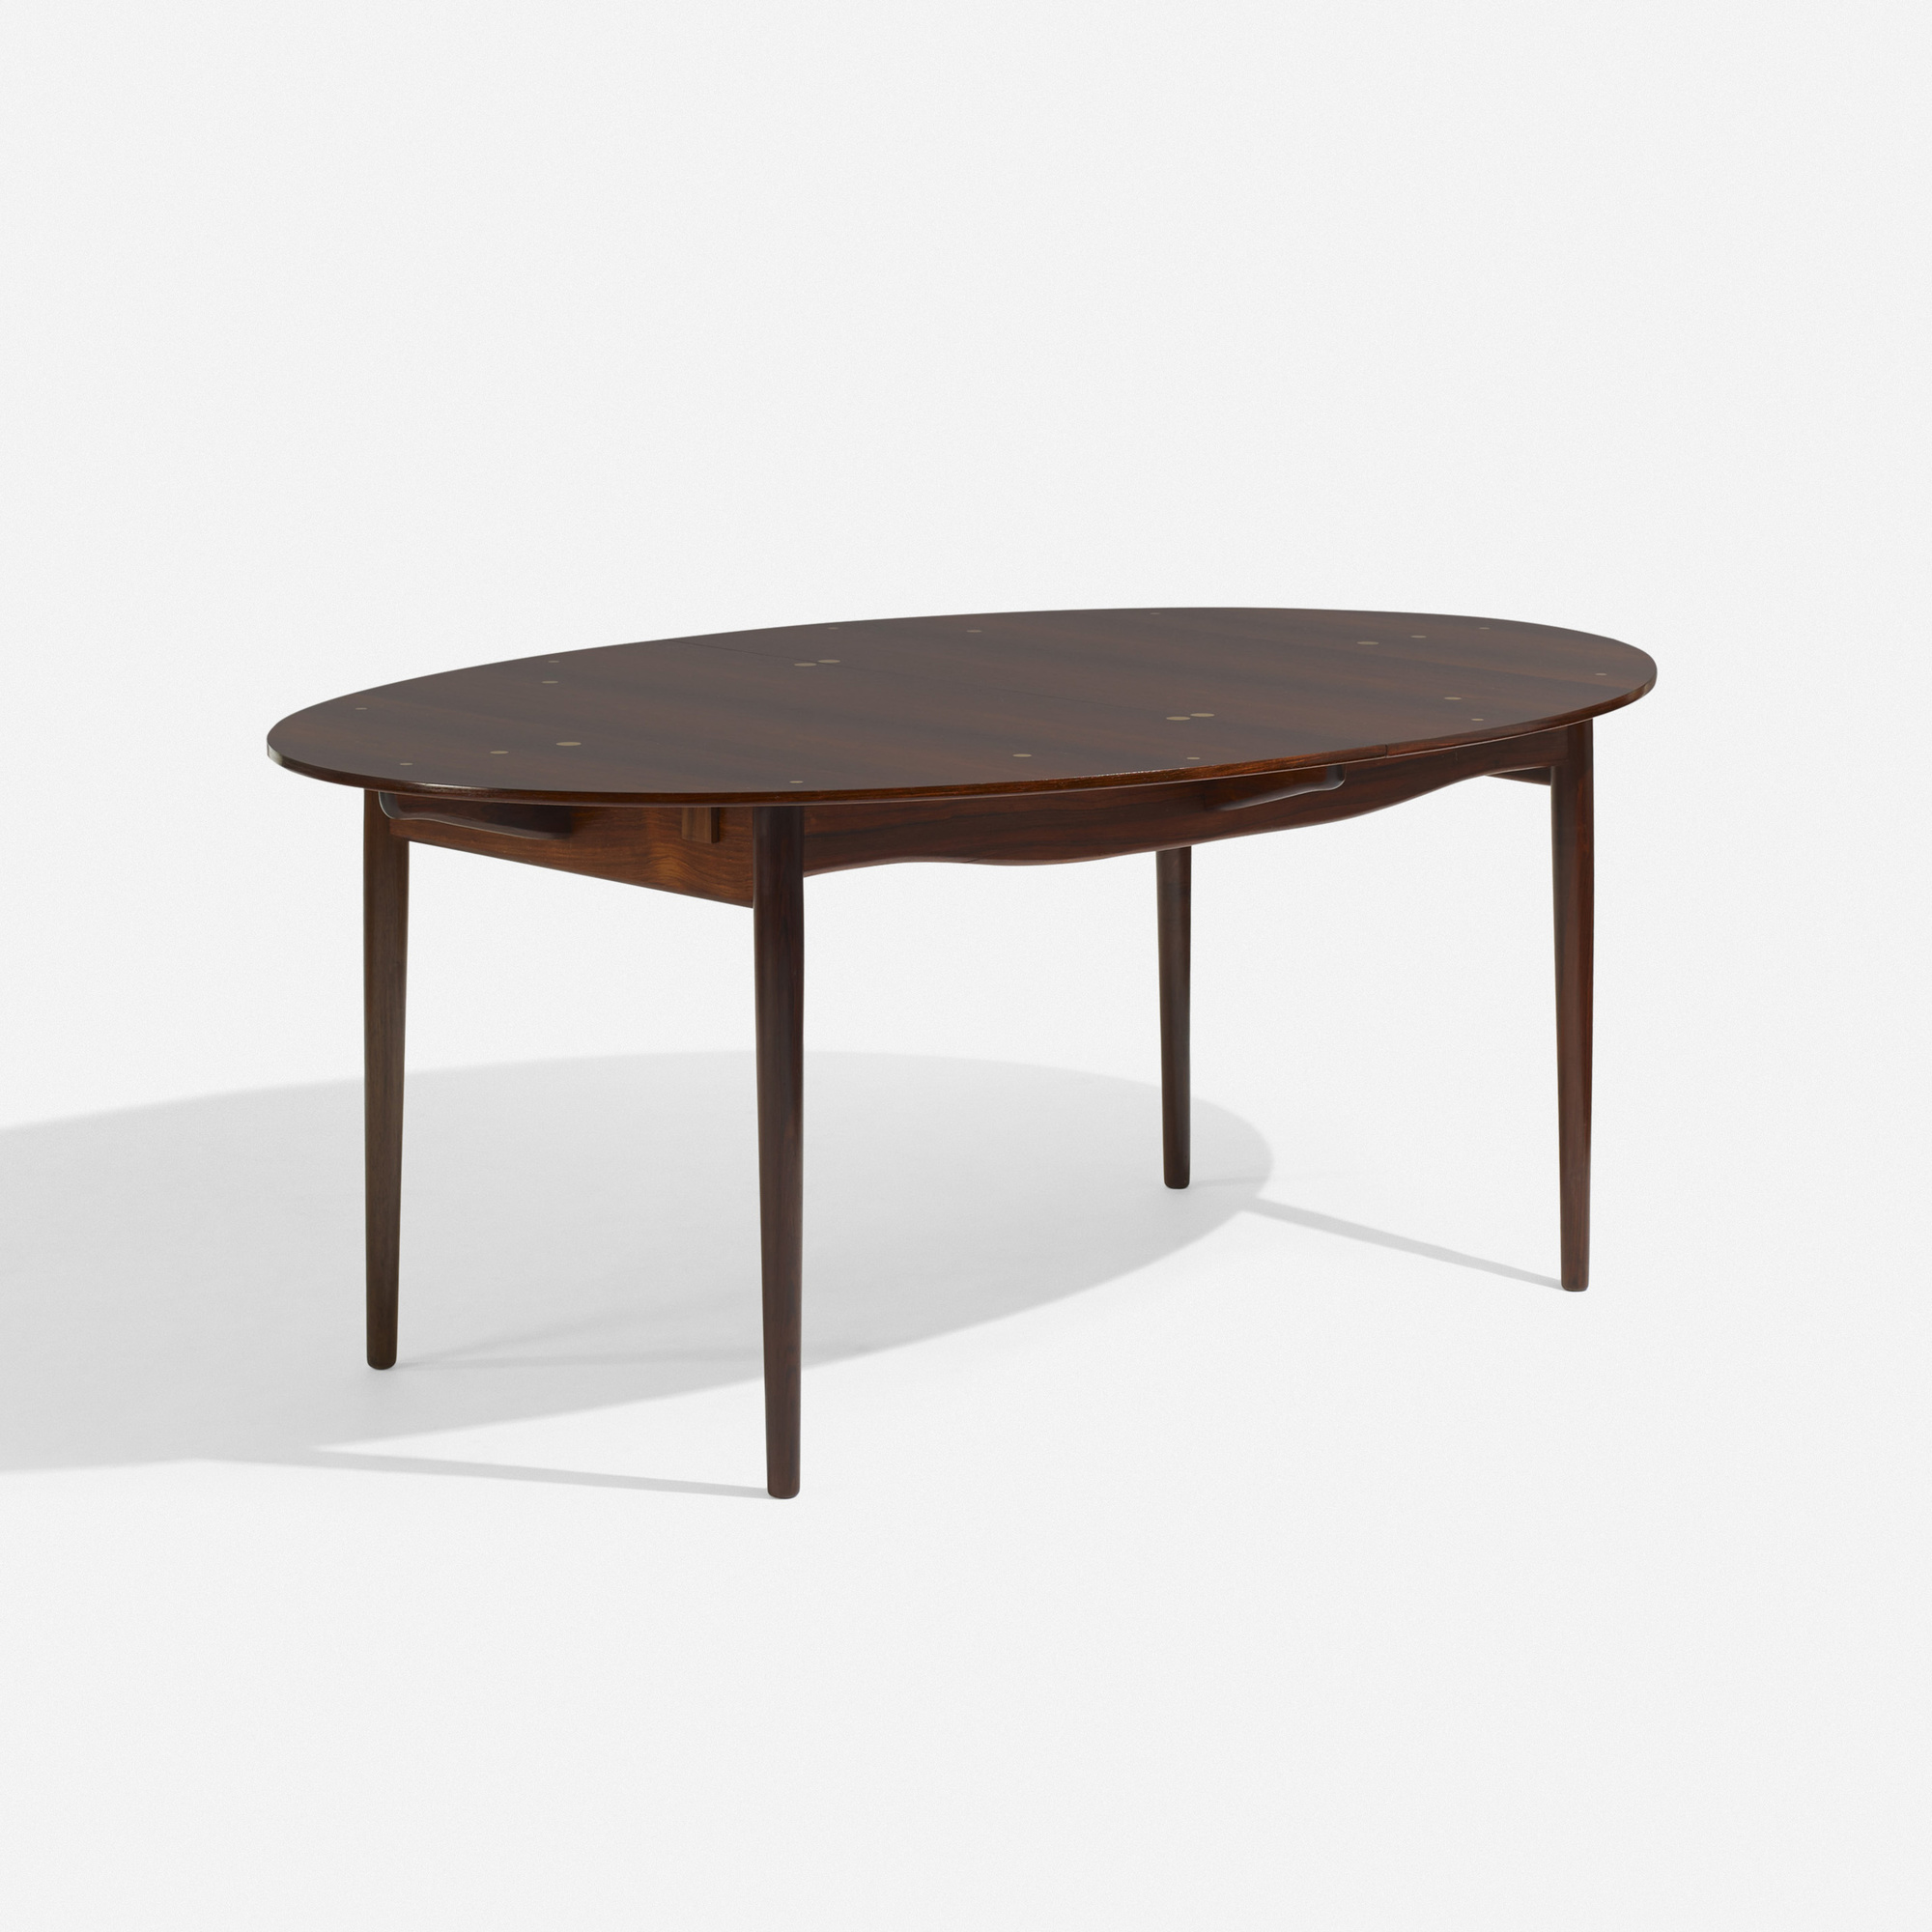 131 finn juhl judas dining table for Dining table design 2016